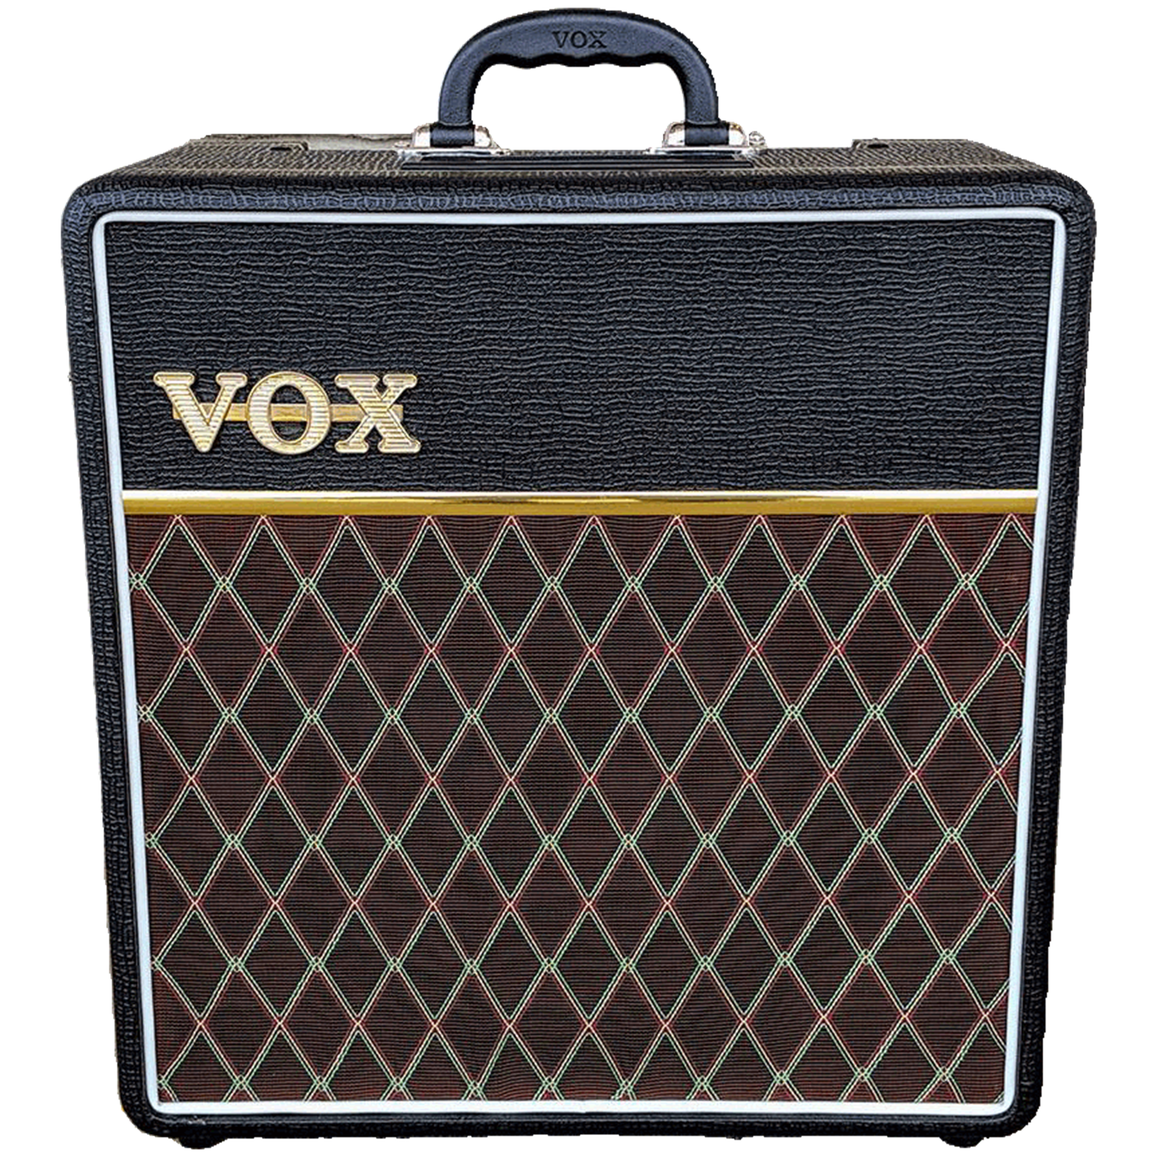 Vox AC4C112VB Limited Edition 4w 1x12 Combo Electric Amplifier